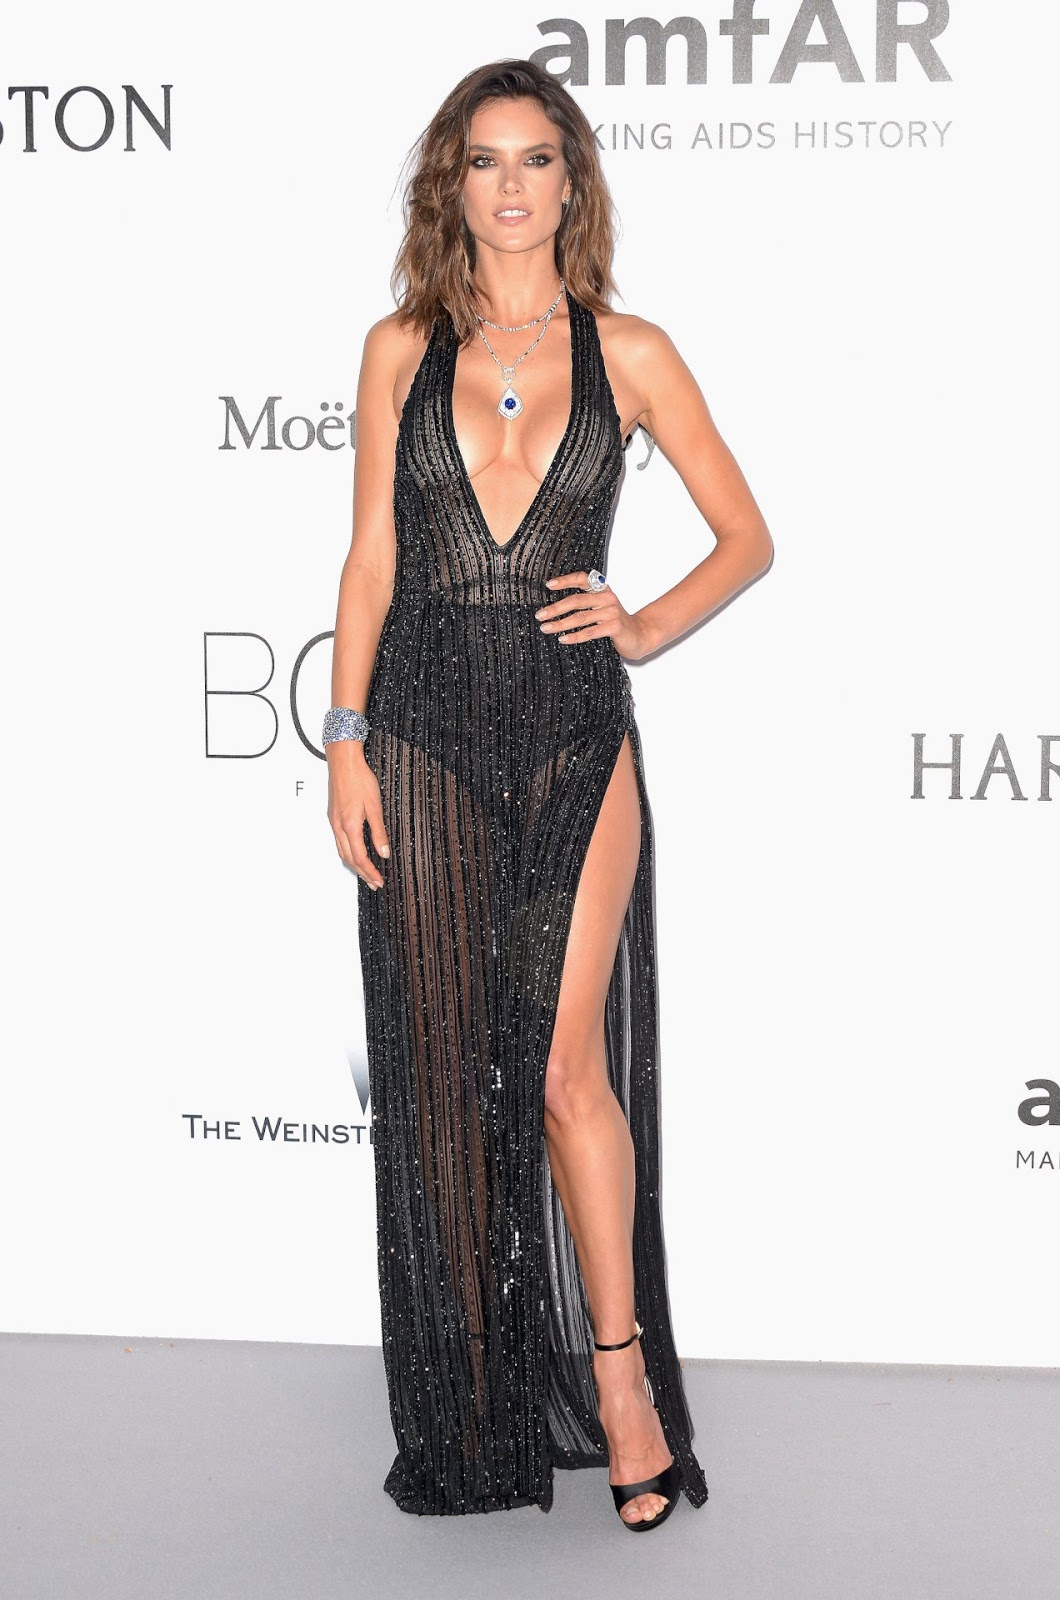 Alessandra Ambrosio goes braless at the amfAR Gala in Cannes